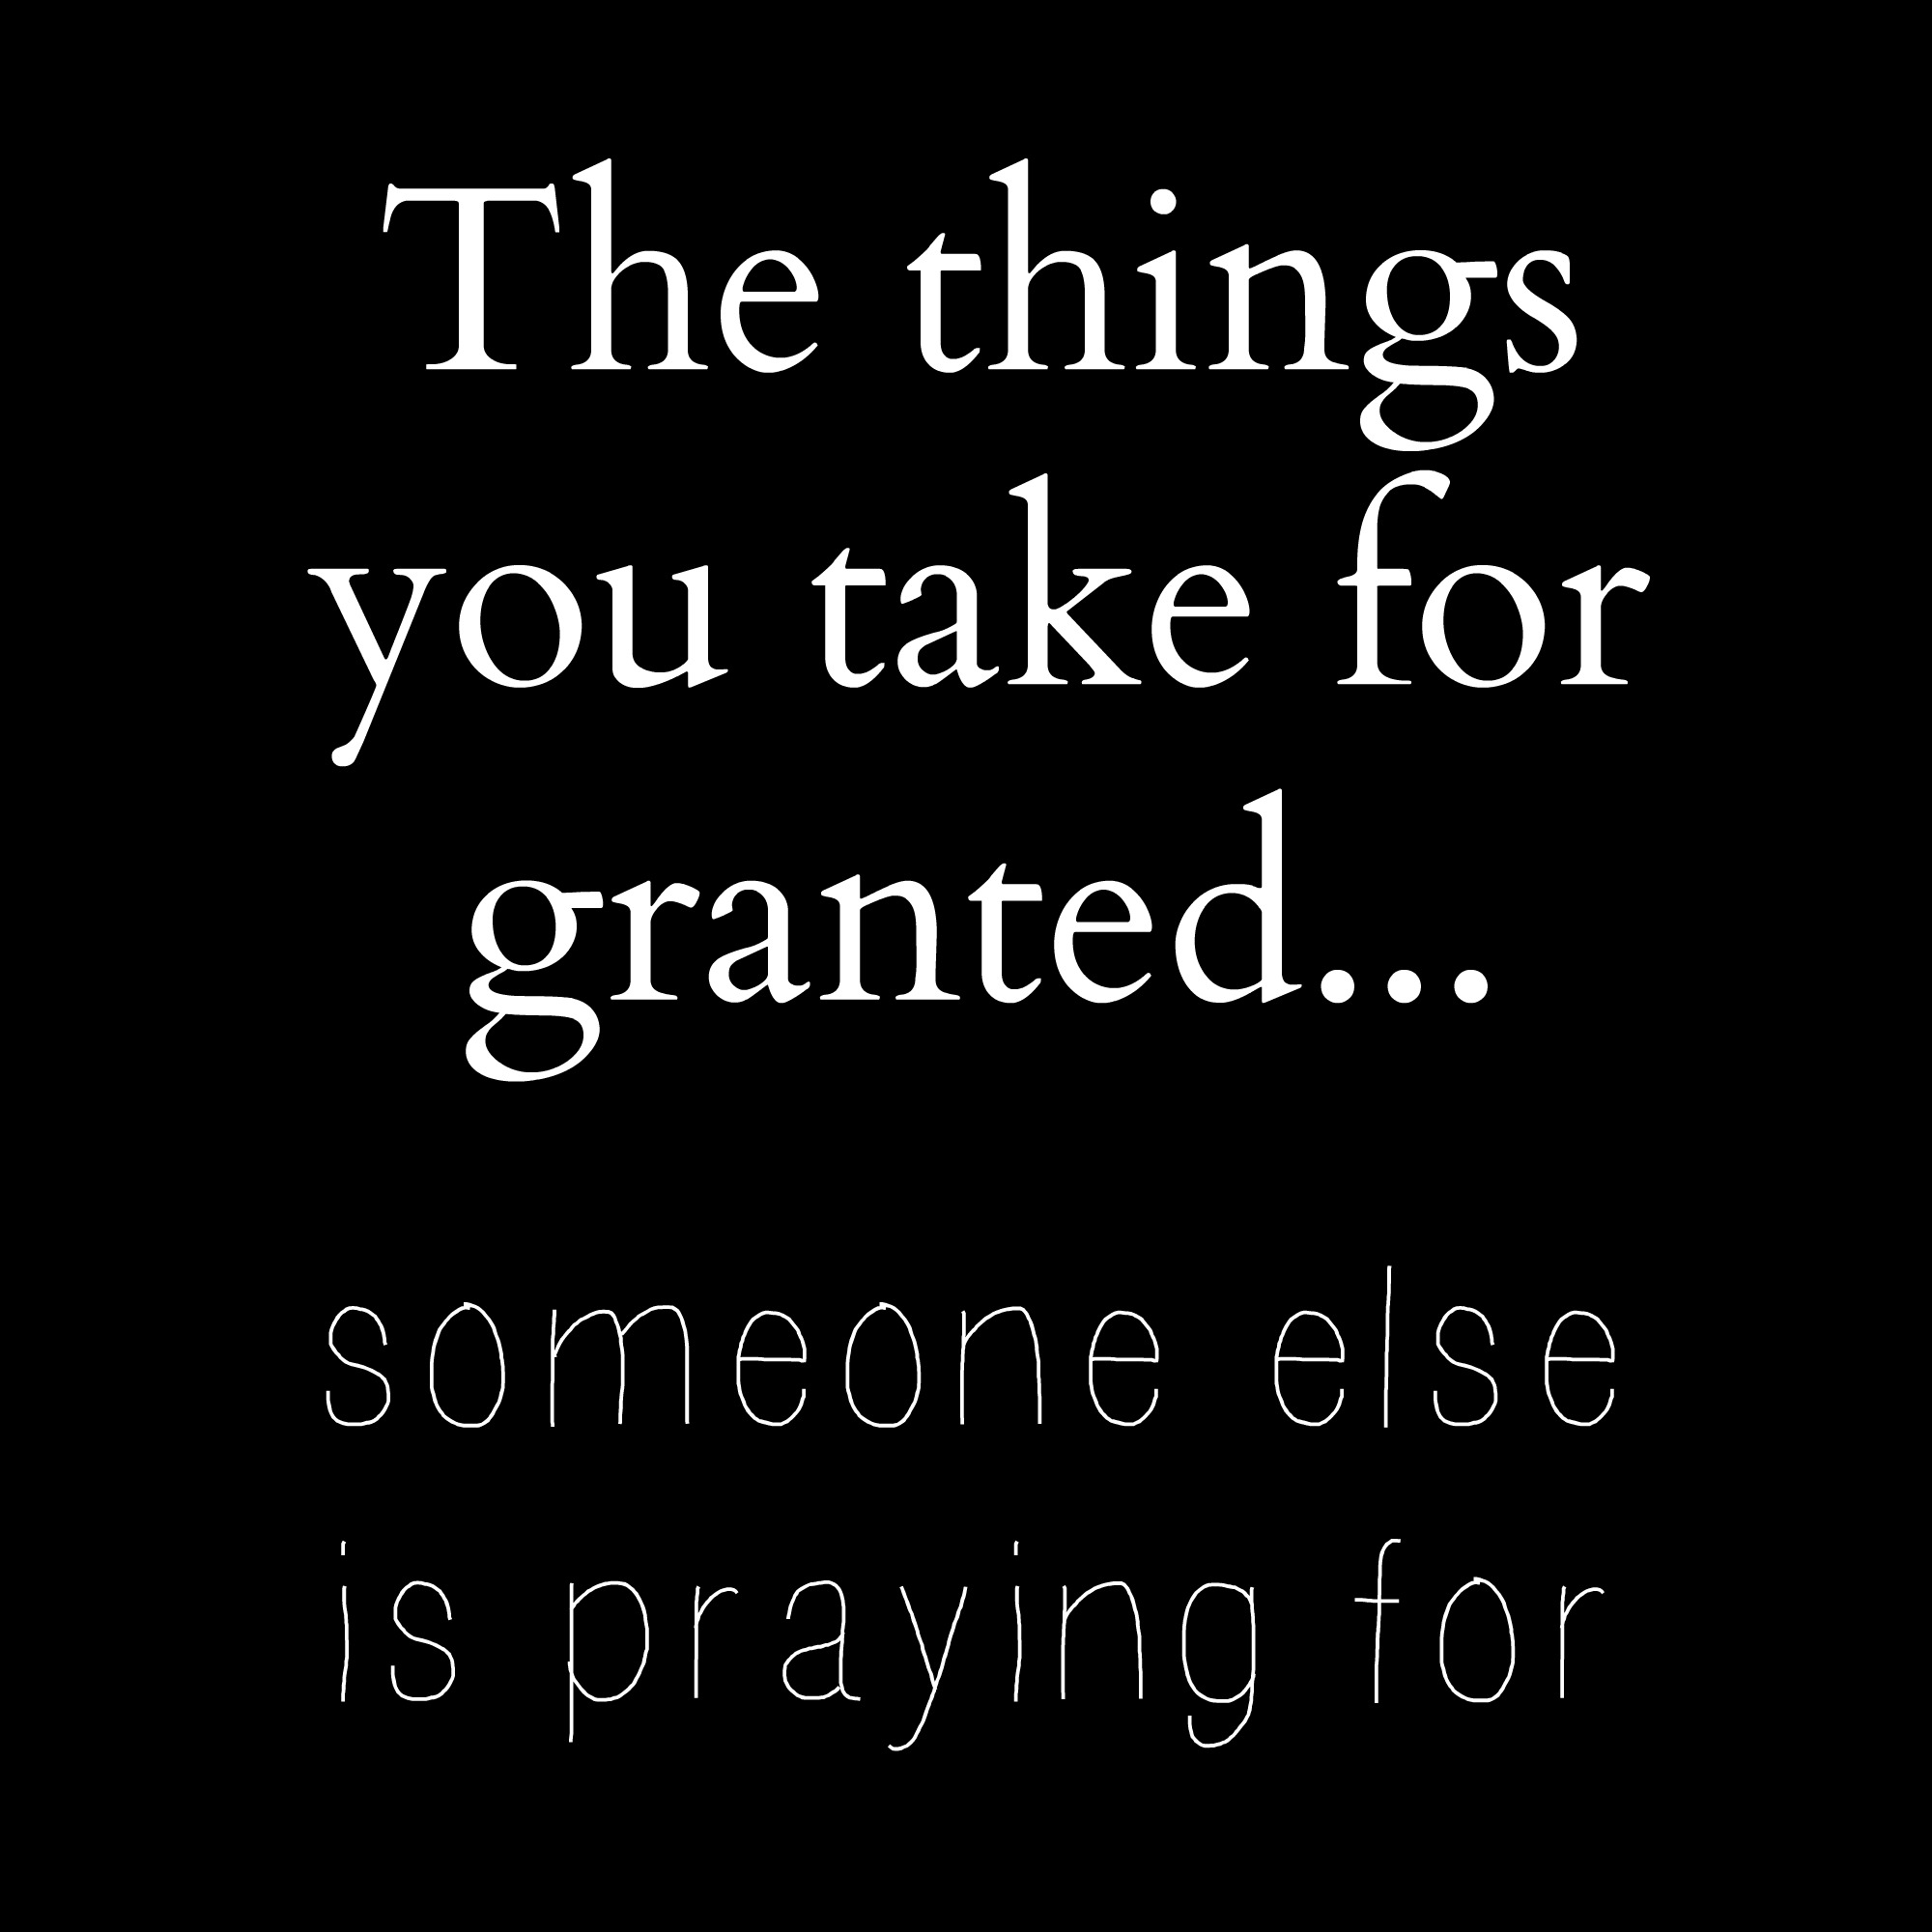 Dnr Take Anyone For Granted Quotes: Taking Things For Granted Quotes. QuotesGram